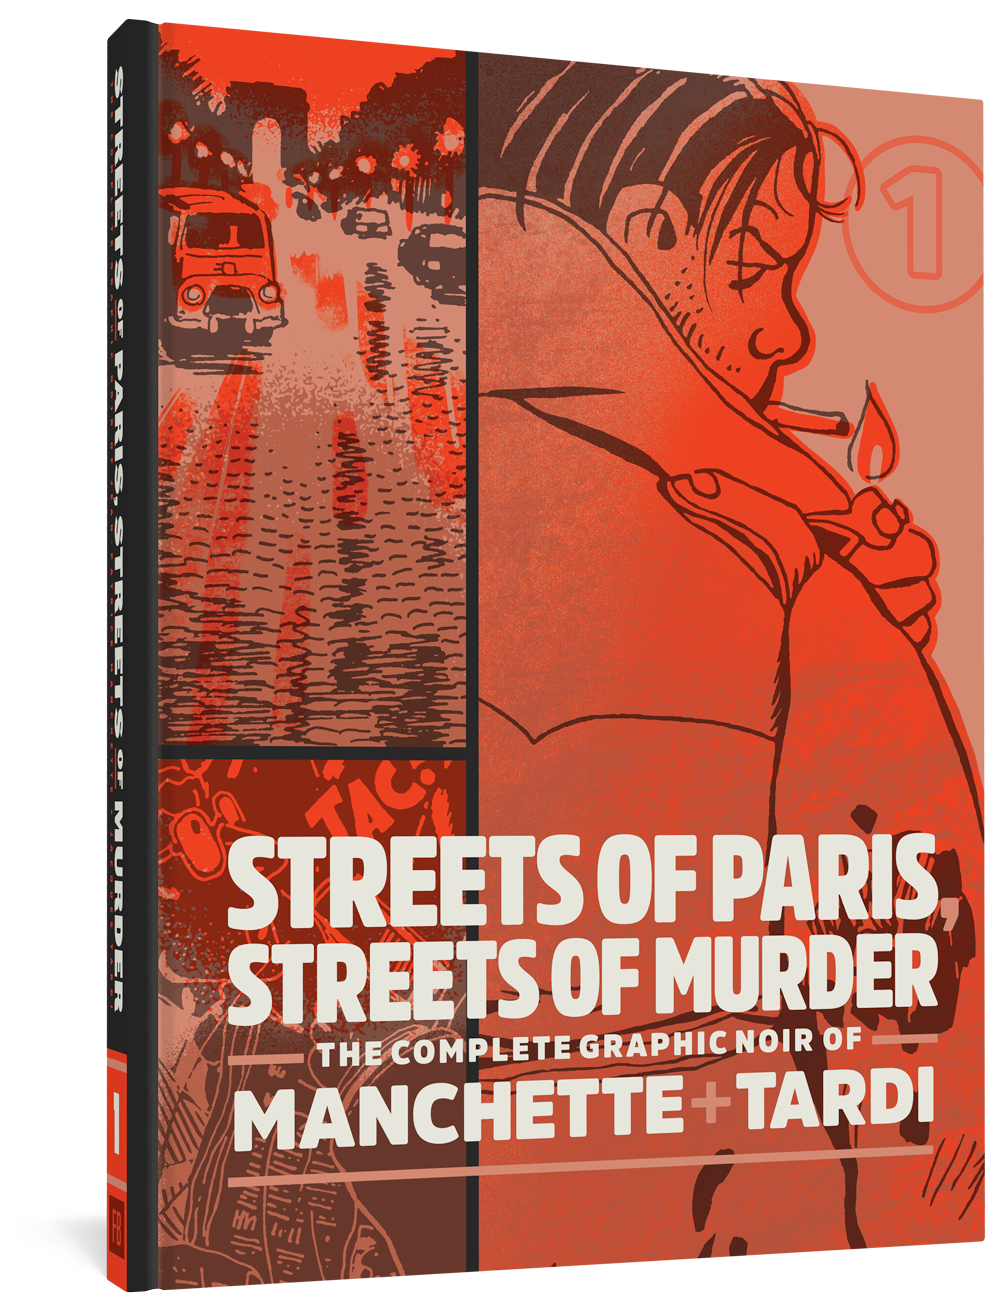 Streets of Paris, Streets of Murder: The Complete Graphic Noir of Manchette & Tardi Vol. 1